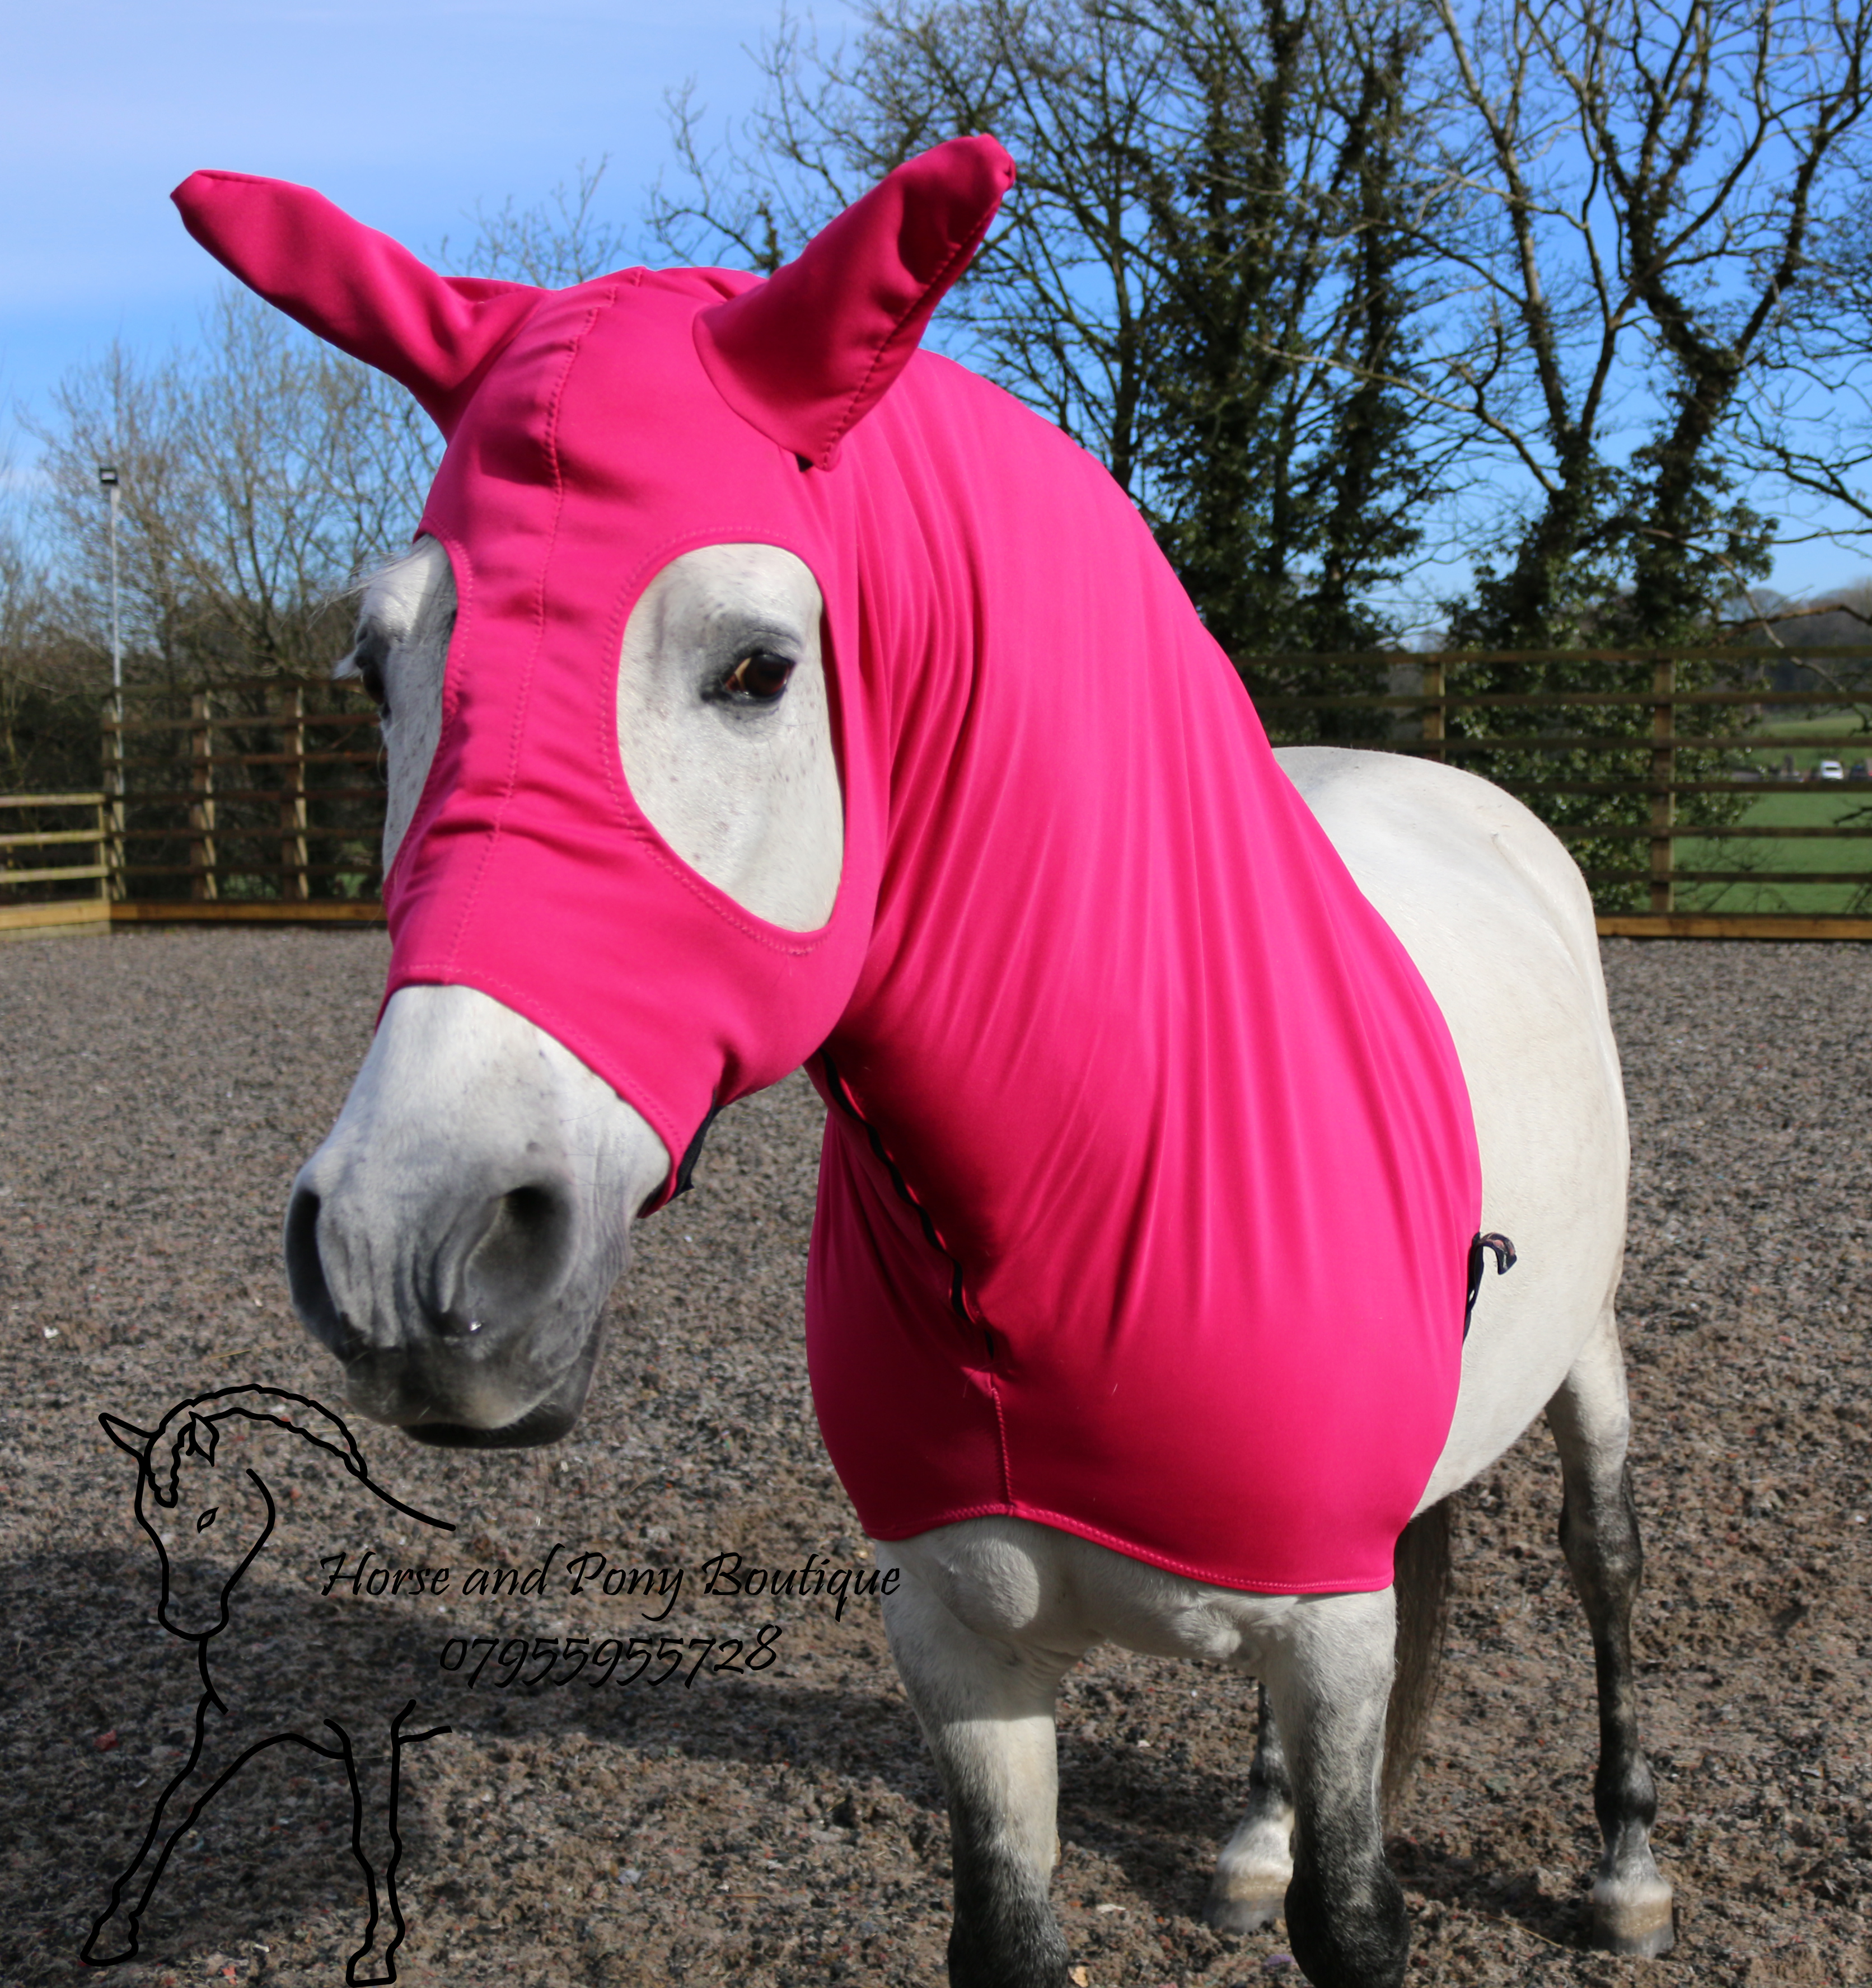 Medium Weight Stretch Hoods Horse Amp Pony Boutique